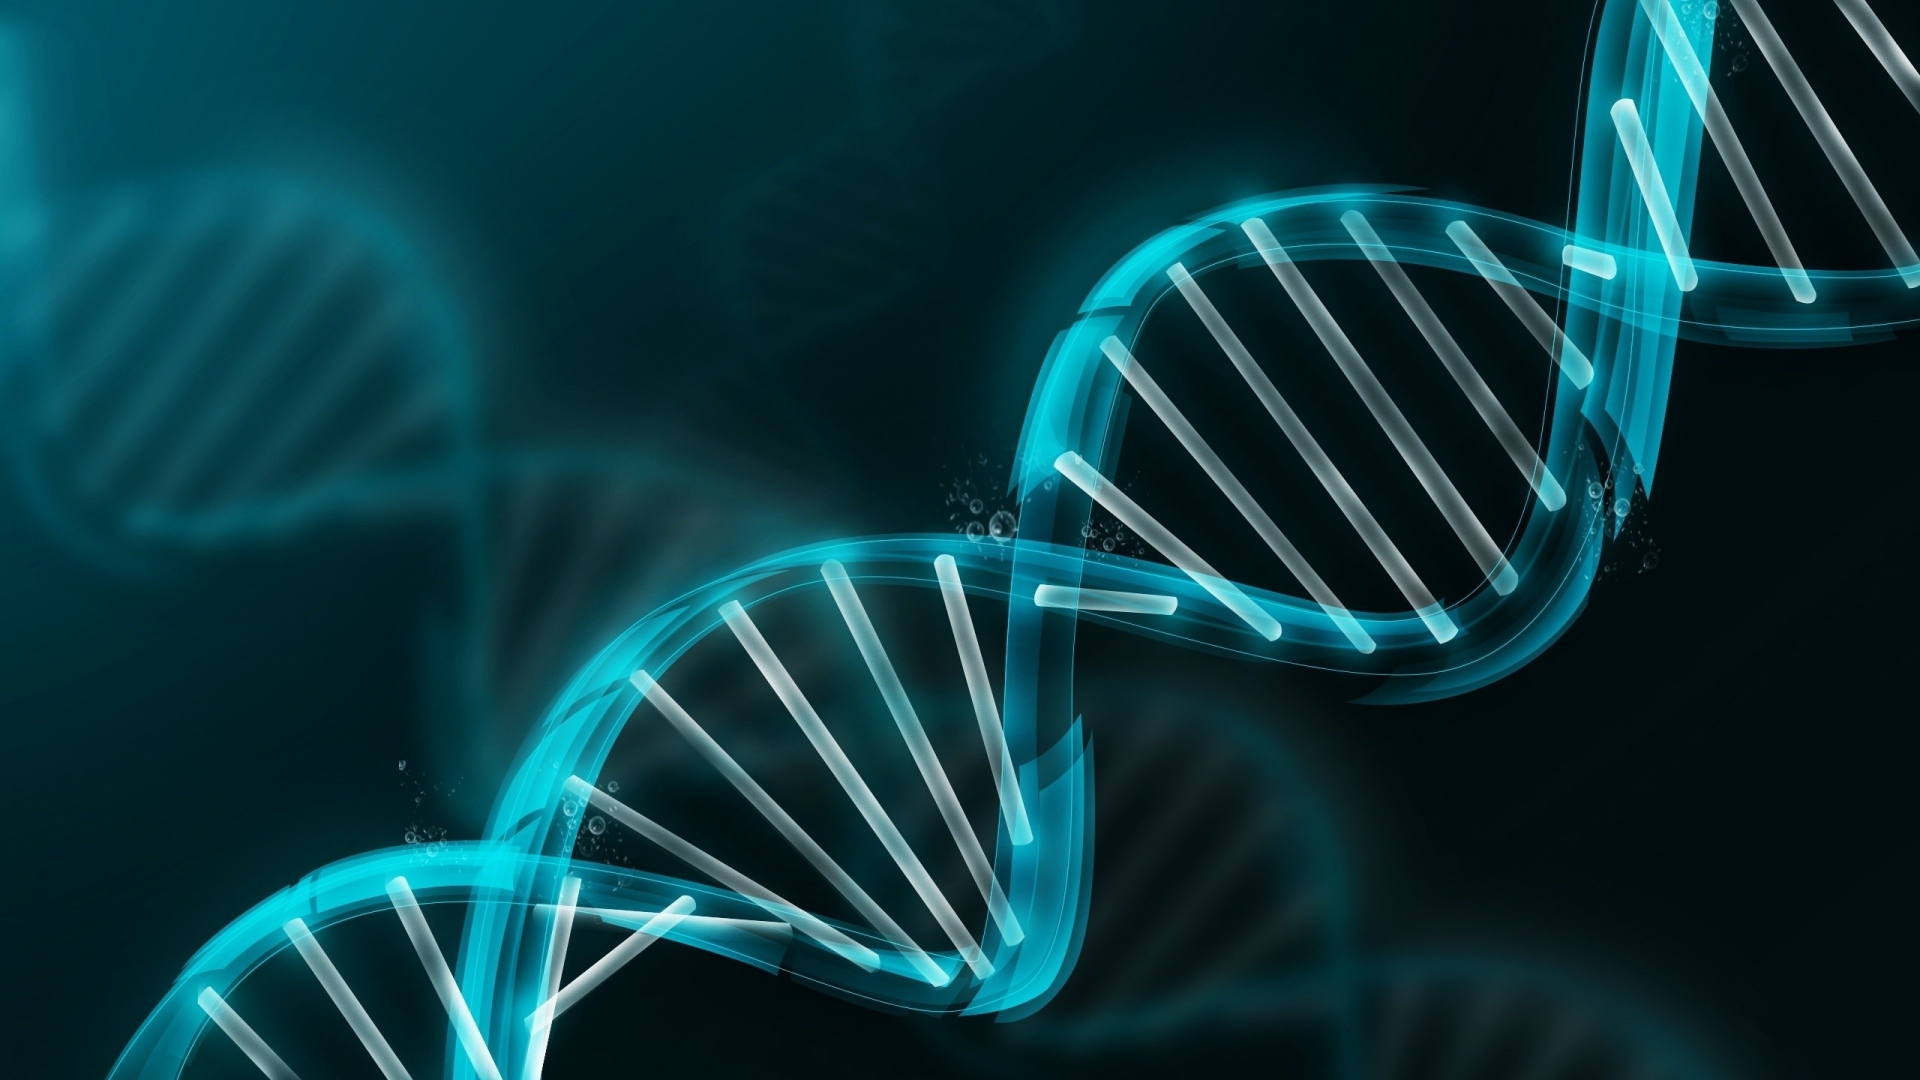 Earnings Disclaimer >> Download Wallpaper 1920x1080 dna, spiral, dark, lines, figure Full HD 1080p HD Background